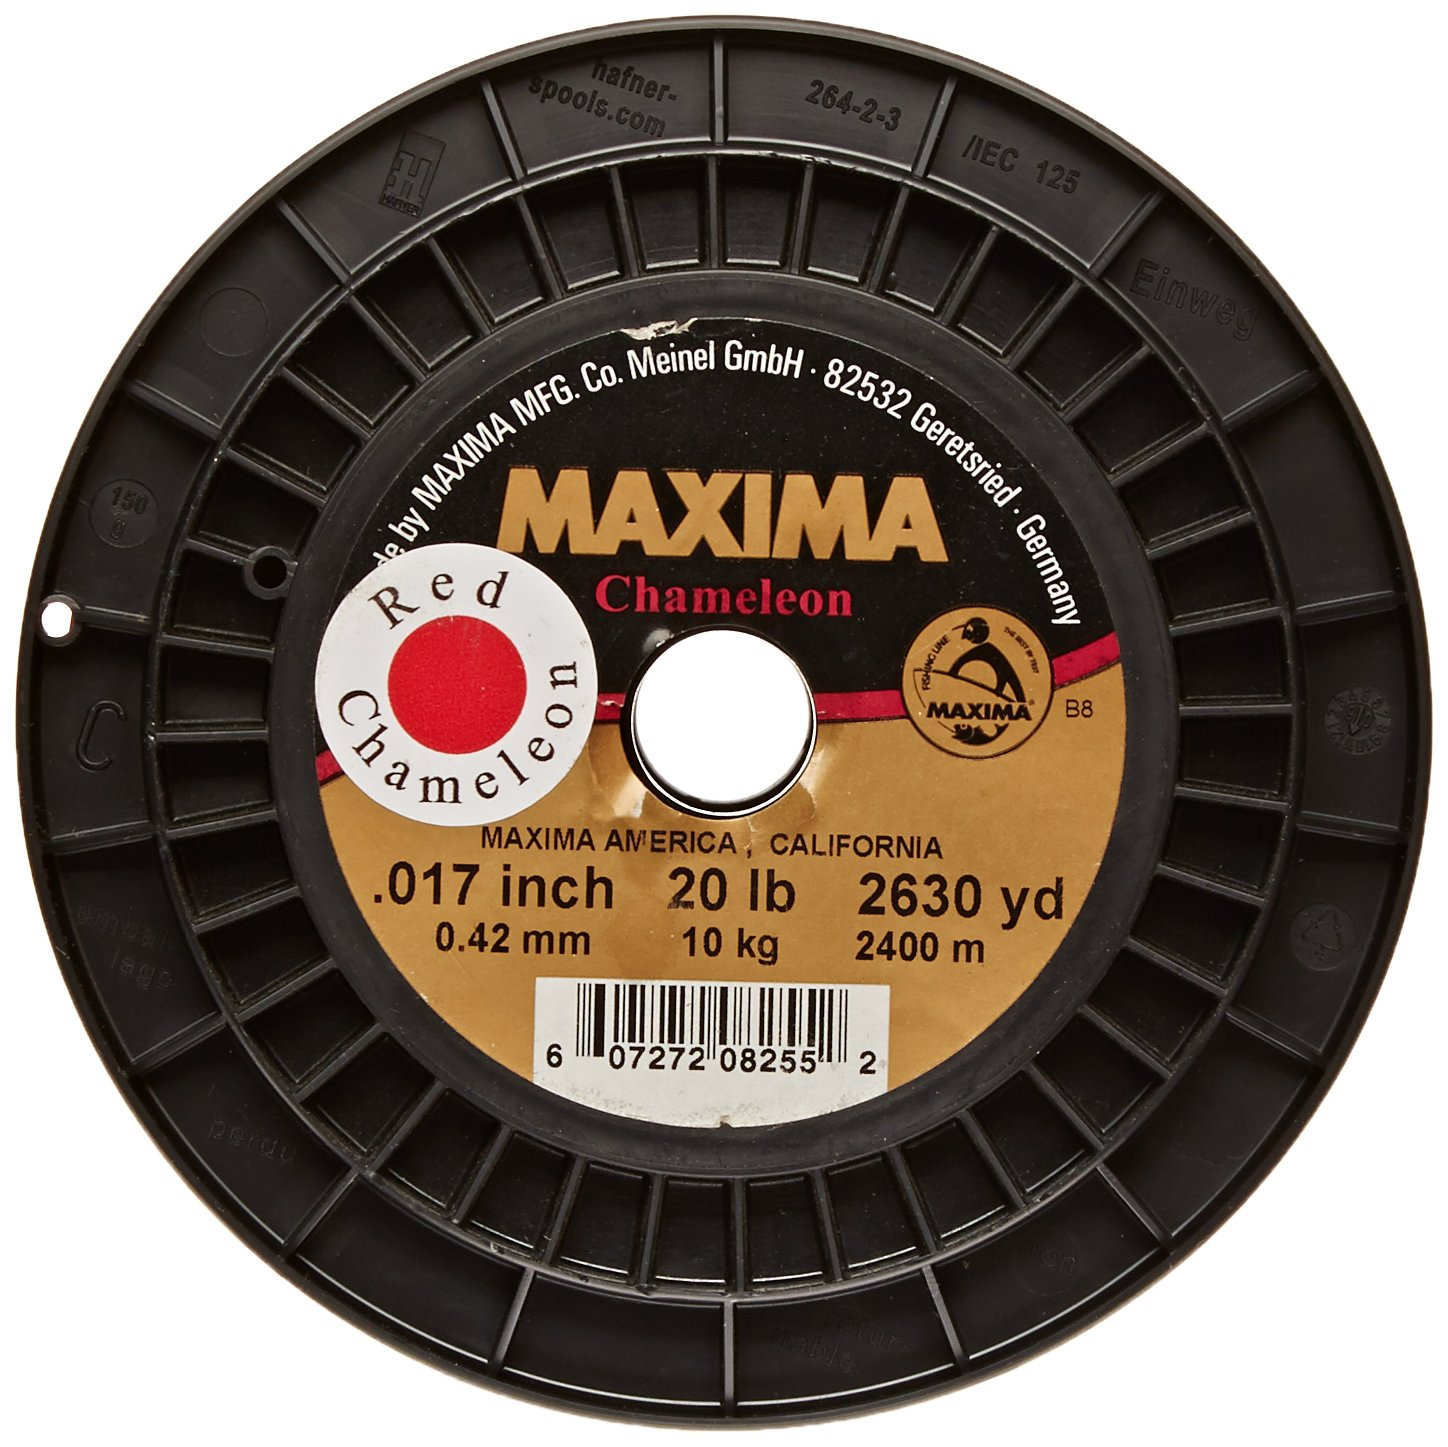 Maxima Fishing Line Service Spools, Chameleon Red, 20-Pound/2630-Yard by Maxima Fishing Line